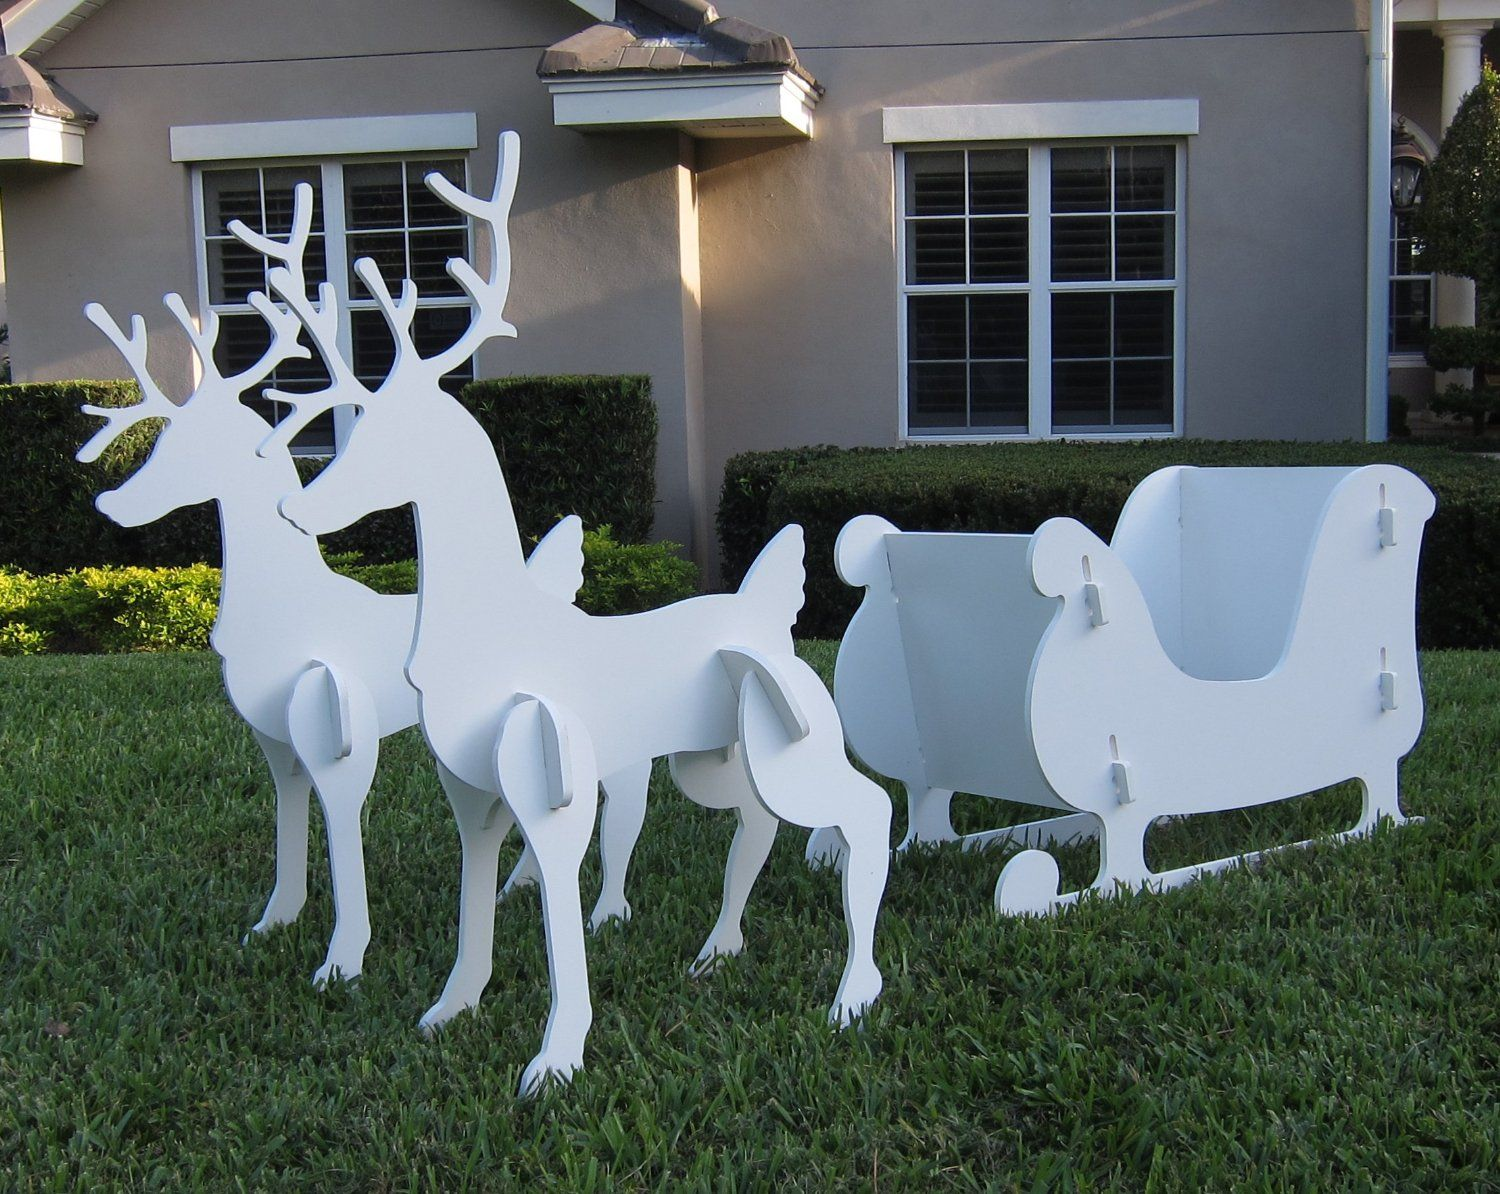 21 christmas outdoor decorations ensure it makes a visual impact 101 recycled crafts - Outdoor Christmas Sleigh Decorations